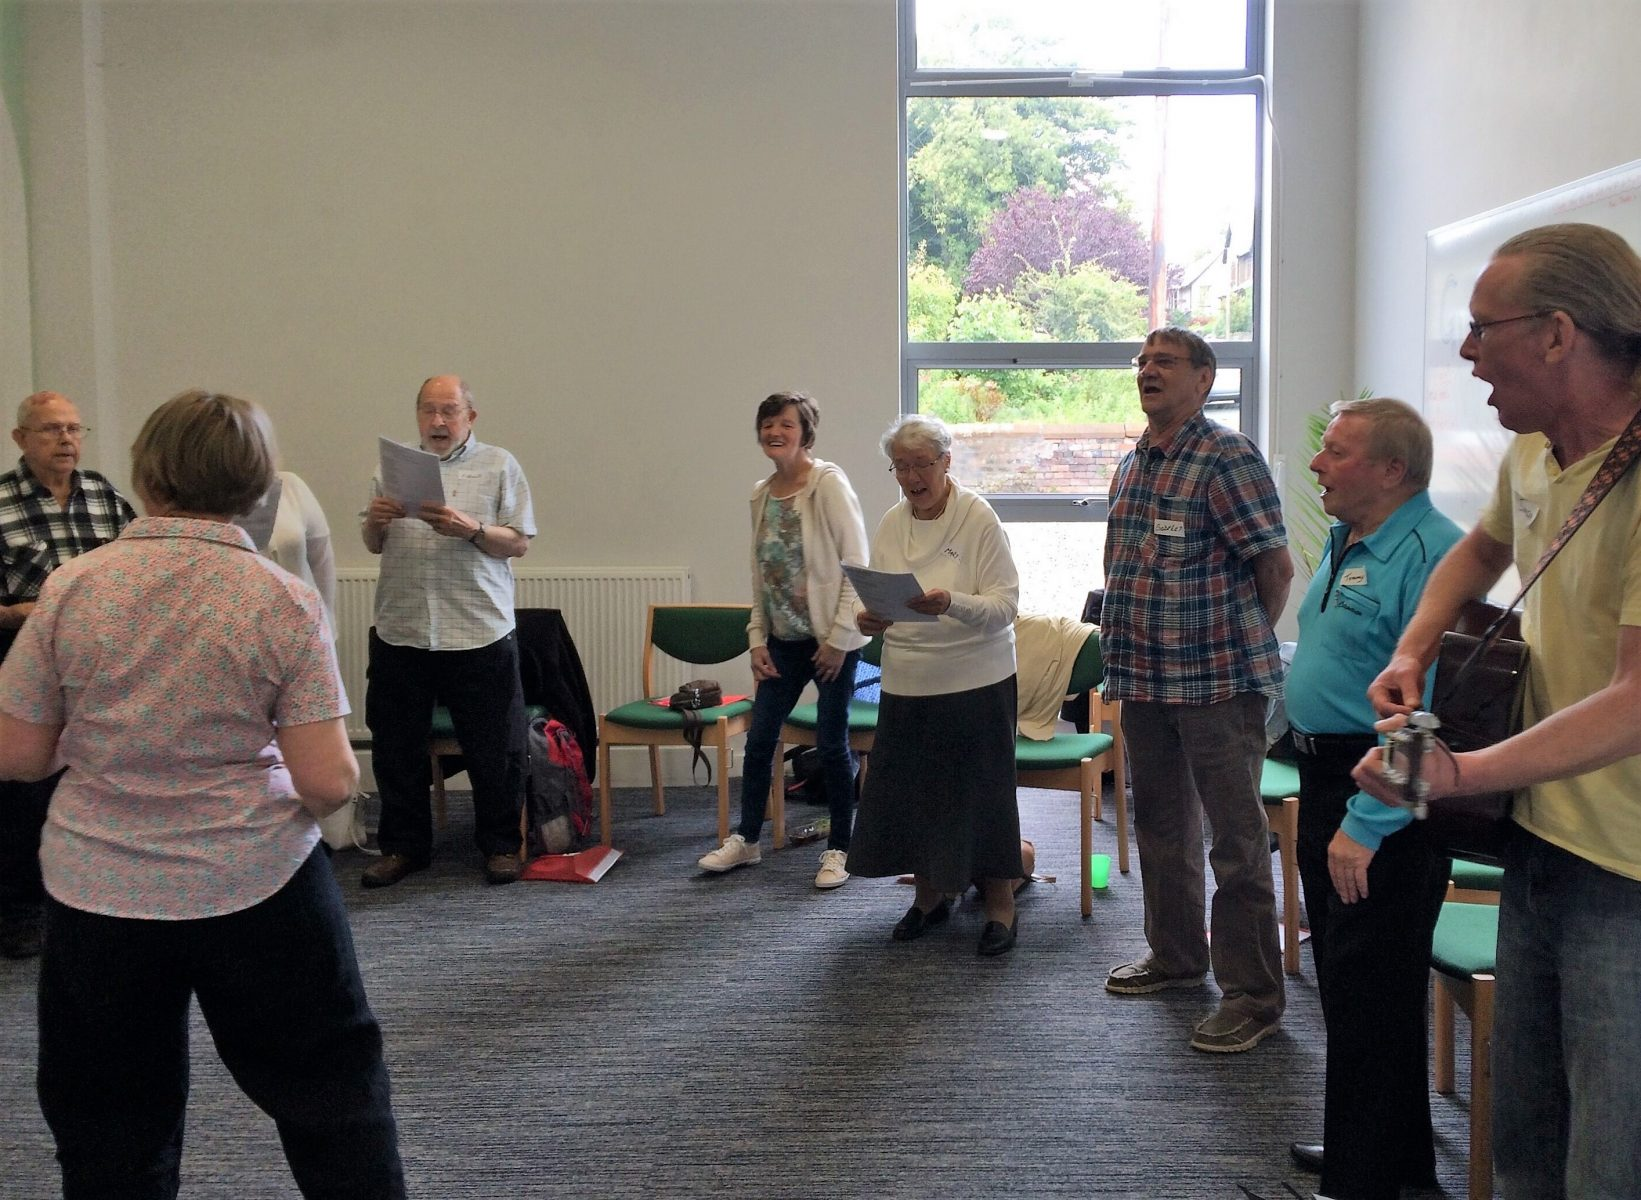 COPD, Burnley, Pulmonary rehab